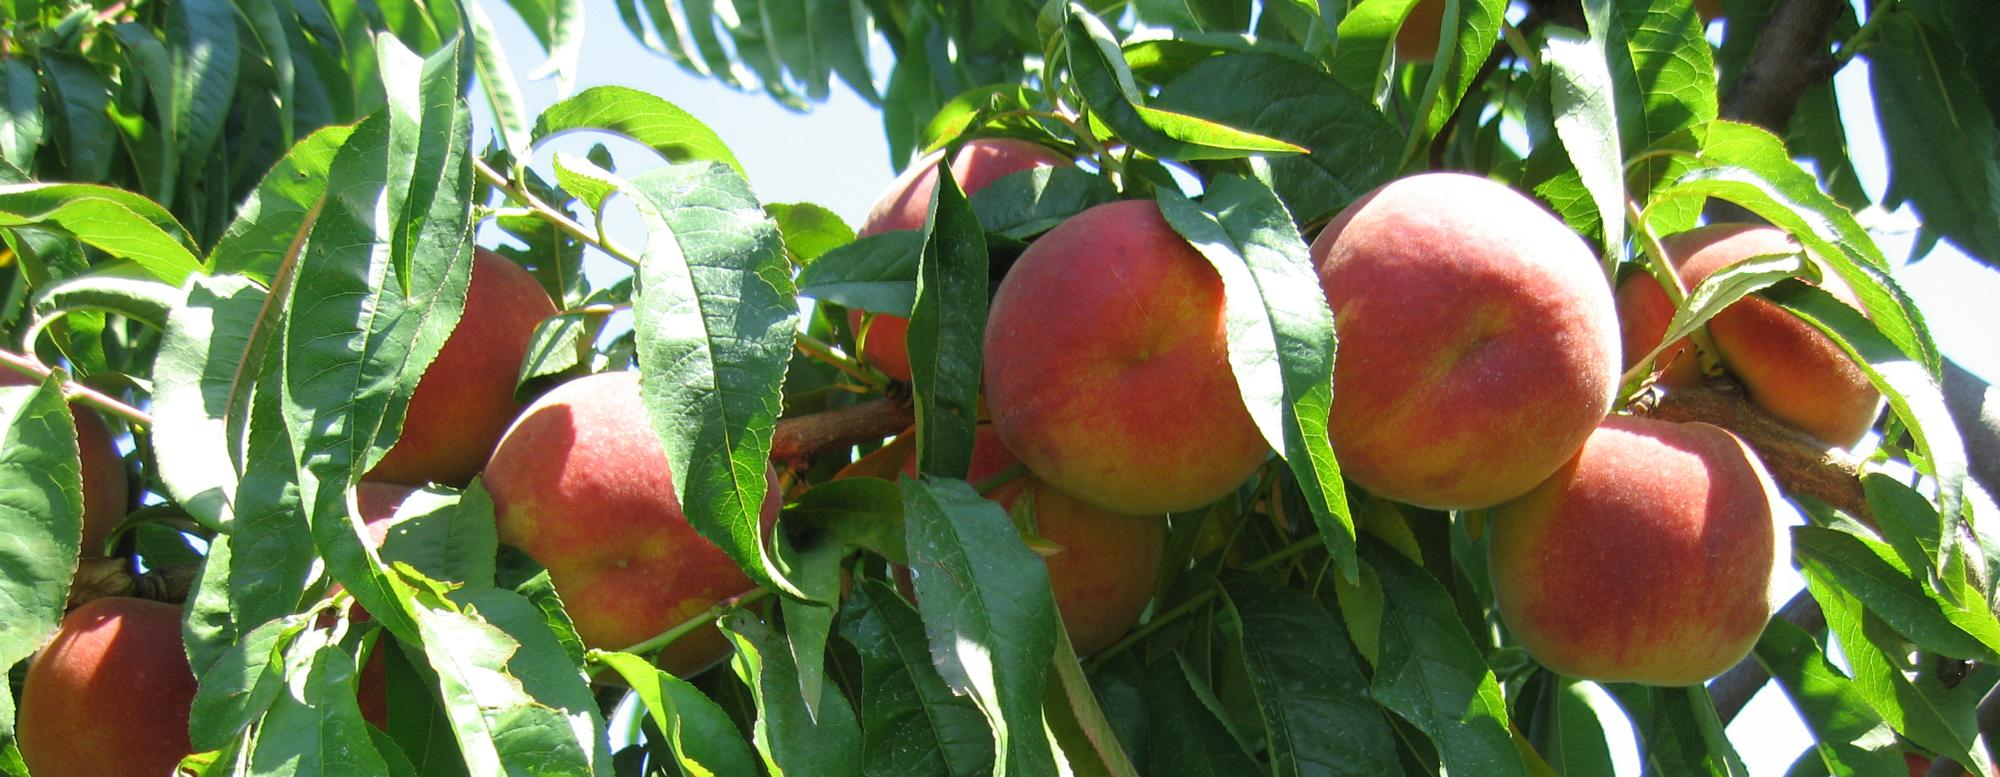 Image of peaches on a tree